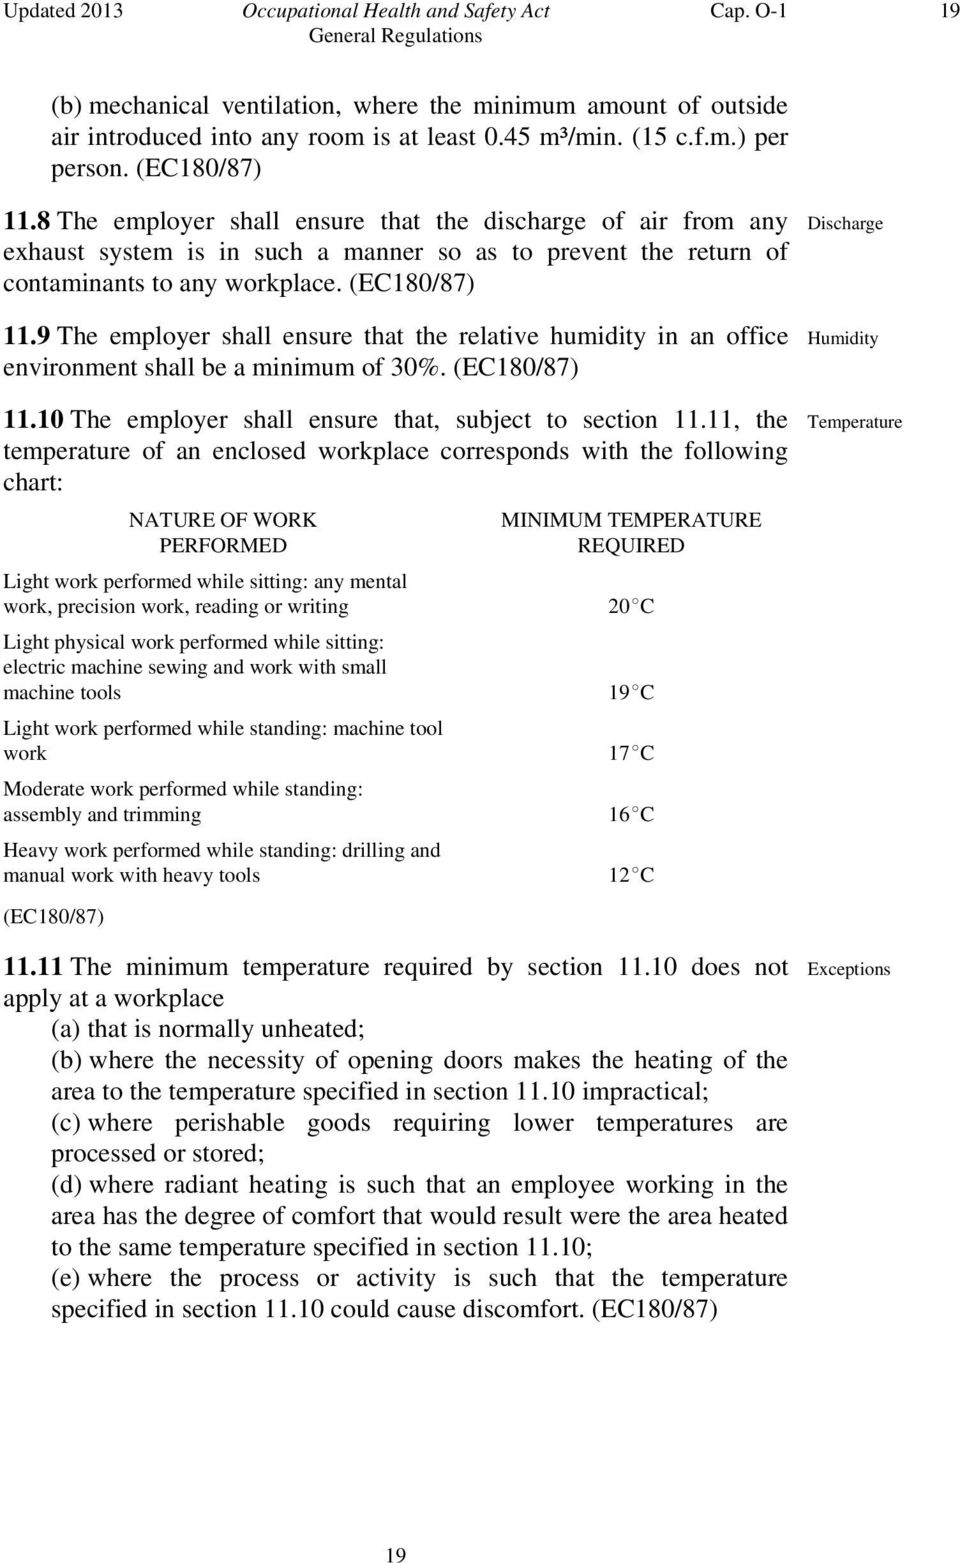 9 The employer shall ensure that the relative humidity in an office environment shall be a minimum of 30%. 11.10 The employer shall ensure that, subject to section 11.